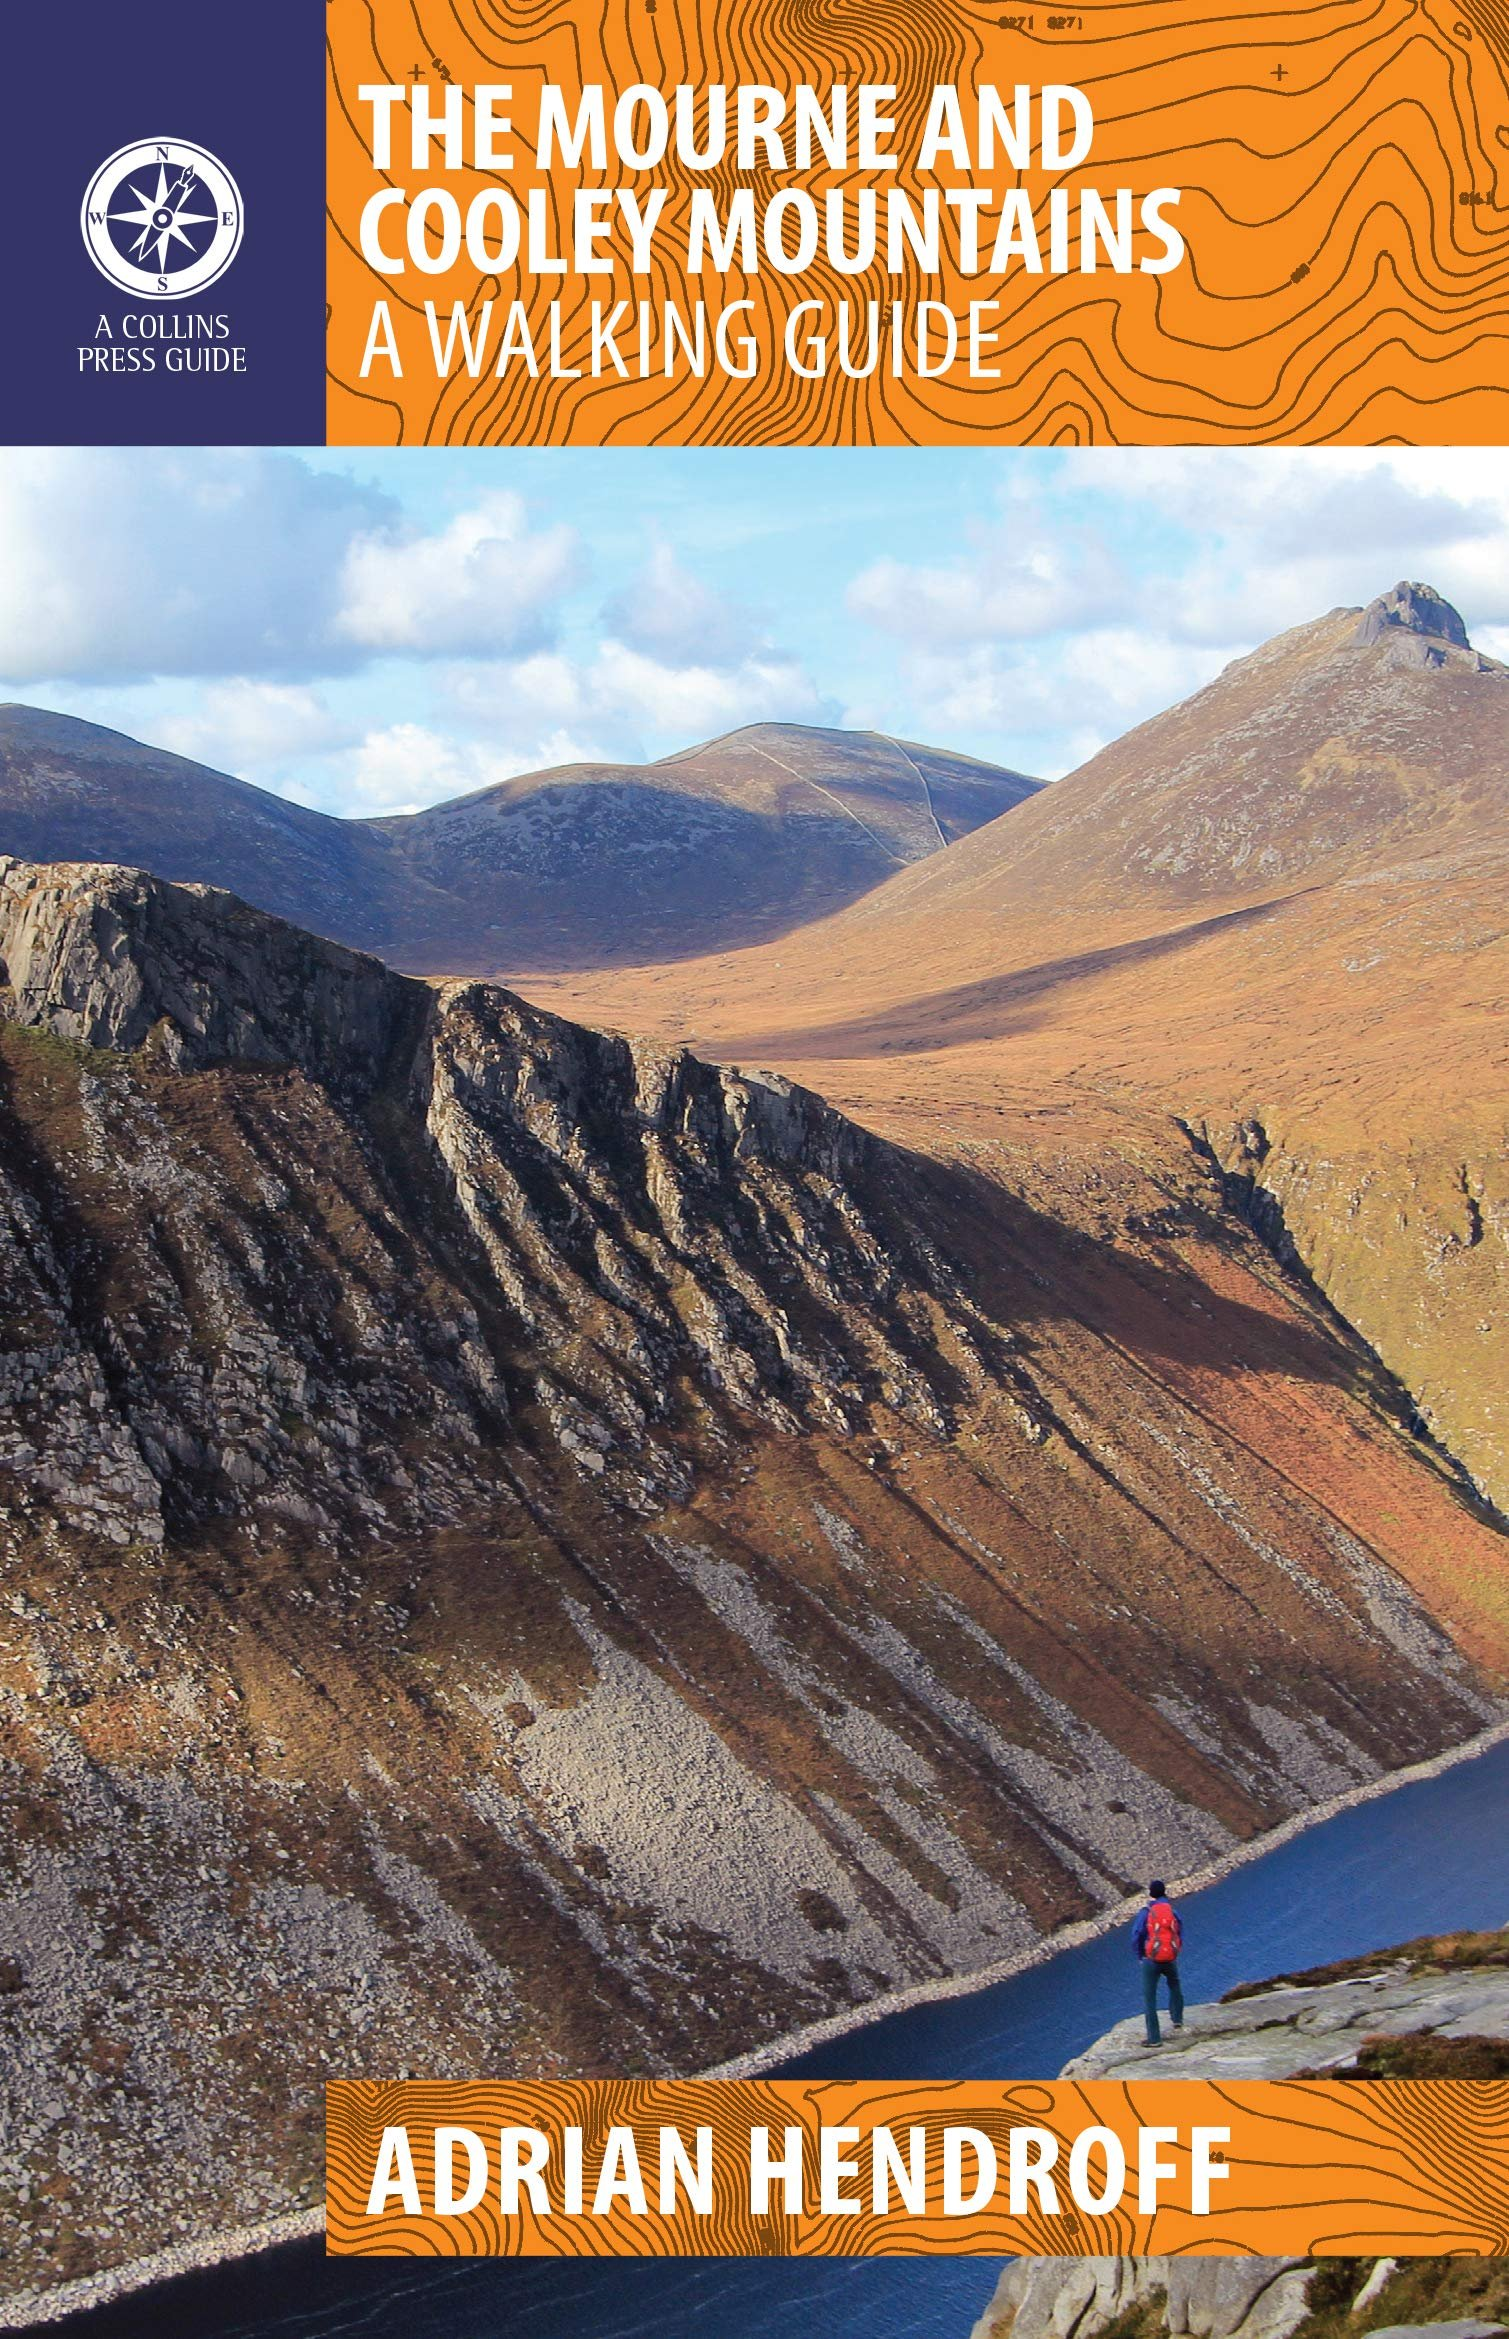 The Mourne and Cooley Mountains 9781848893467 Adrian Hendroff The Collins Press   Wandelgidsen Ierland Noord- en Oost, Dublin